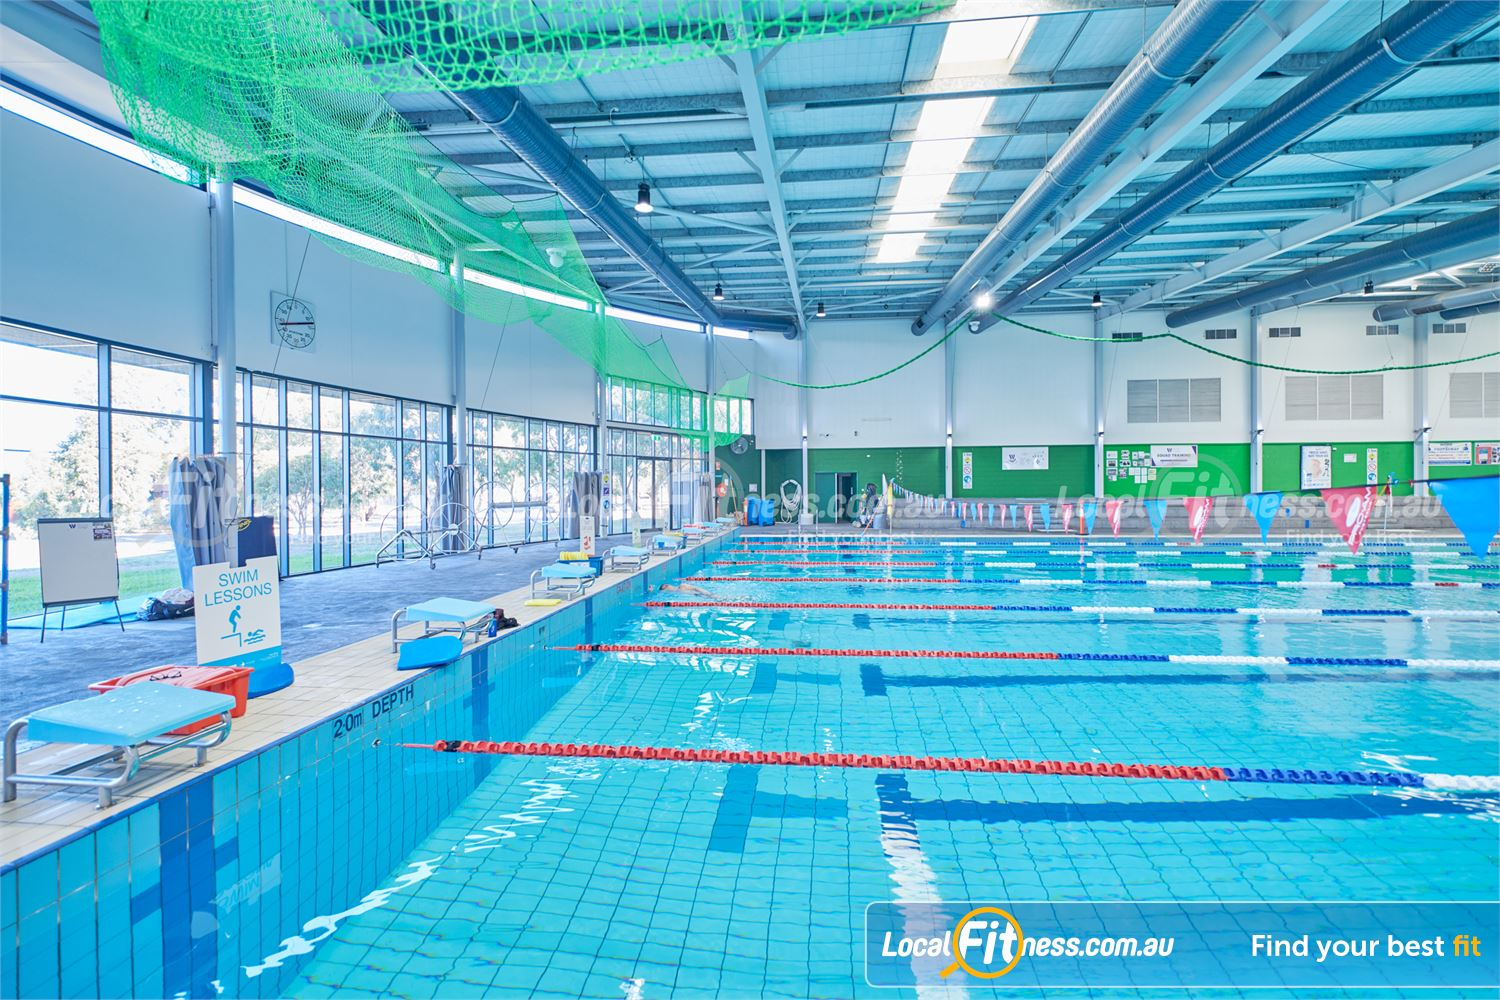 Maribyrnong Aquatic Centre Maribyrnong Lap lane swimming is open for all at our Maribyrnong swimming pool.